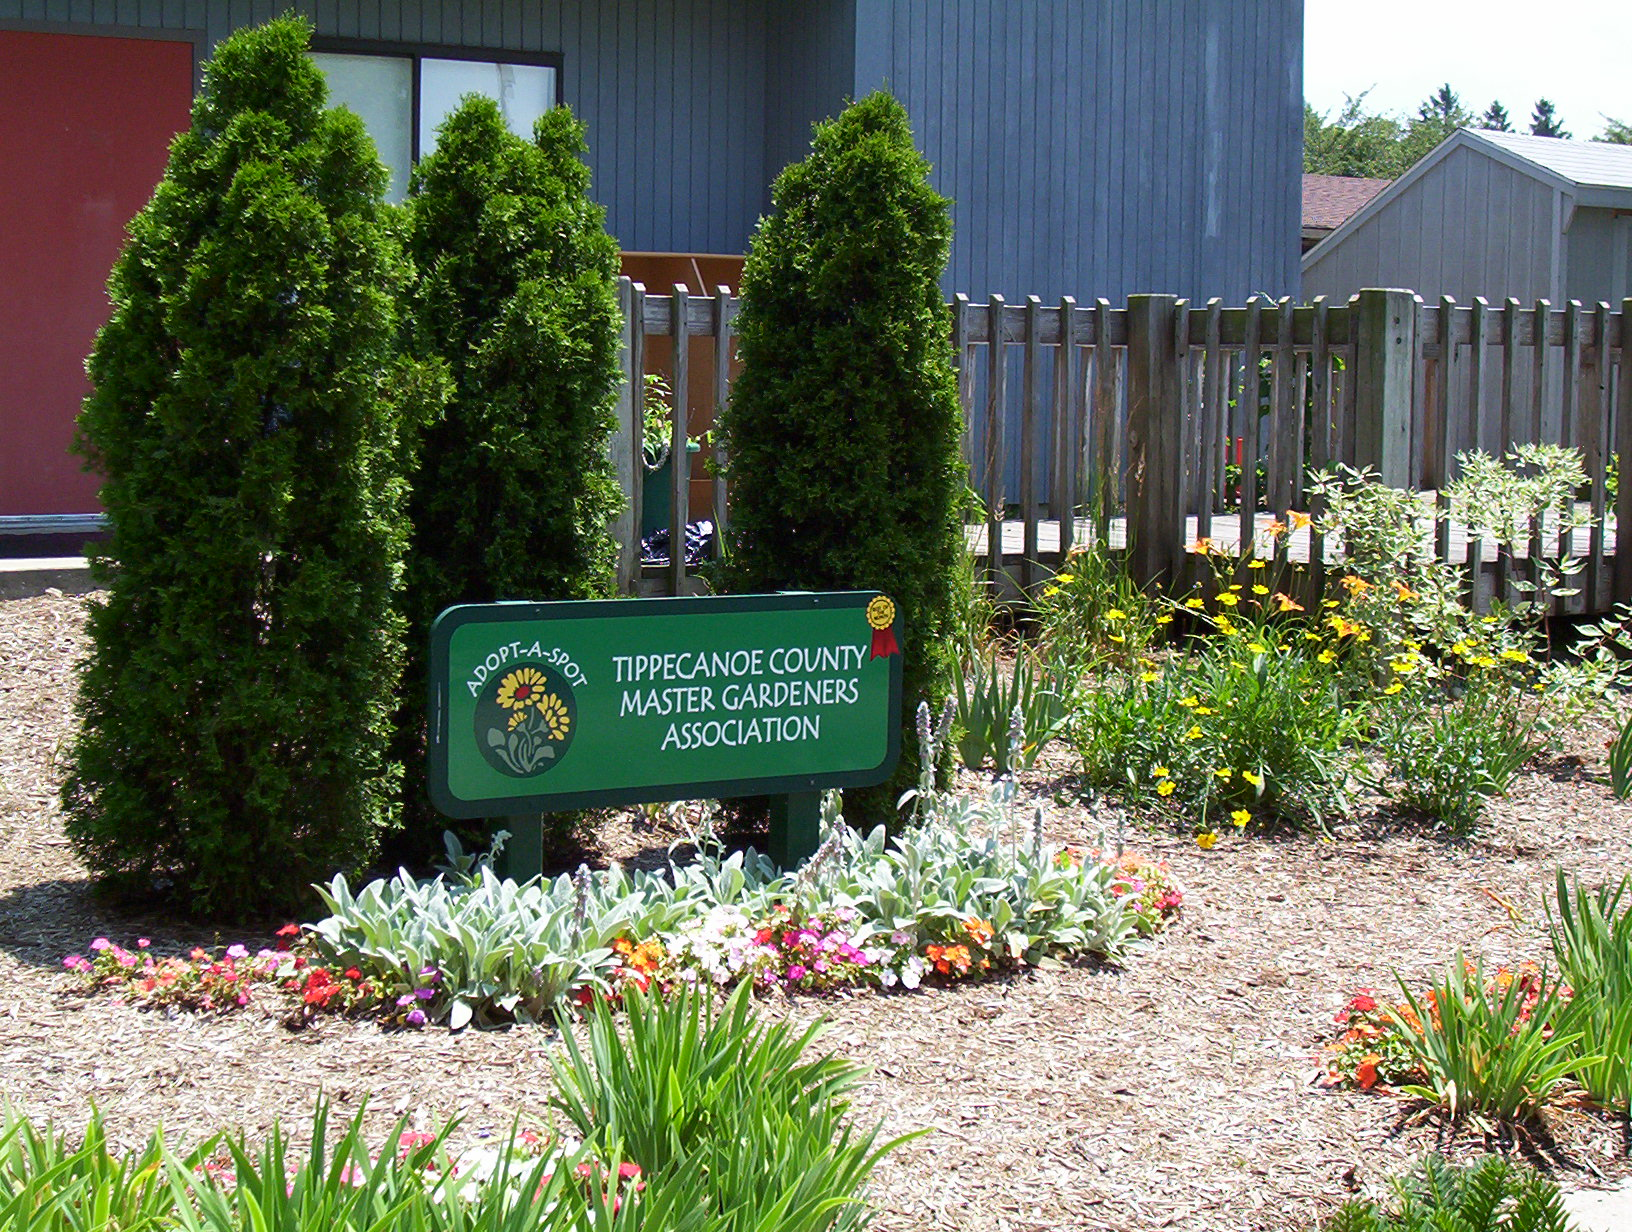 Garden of flowers, trees, and a sign indicating the sponsor